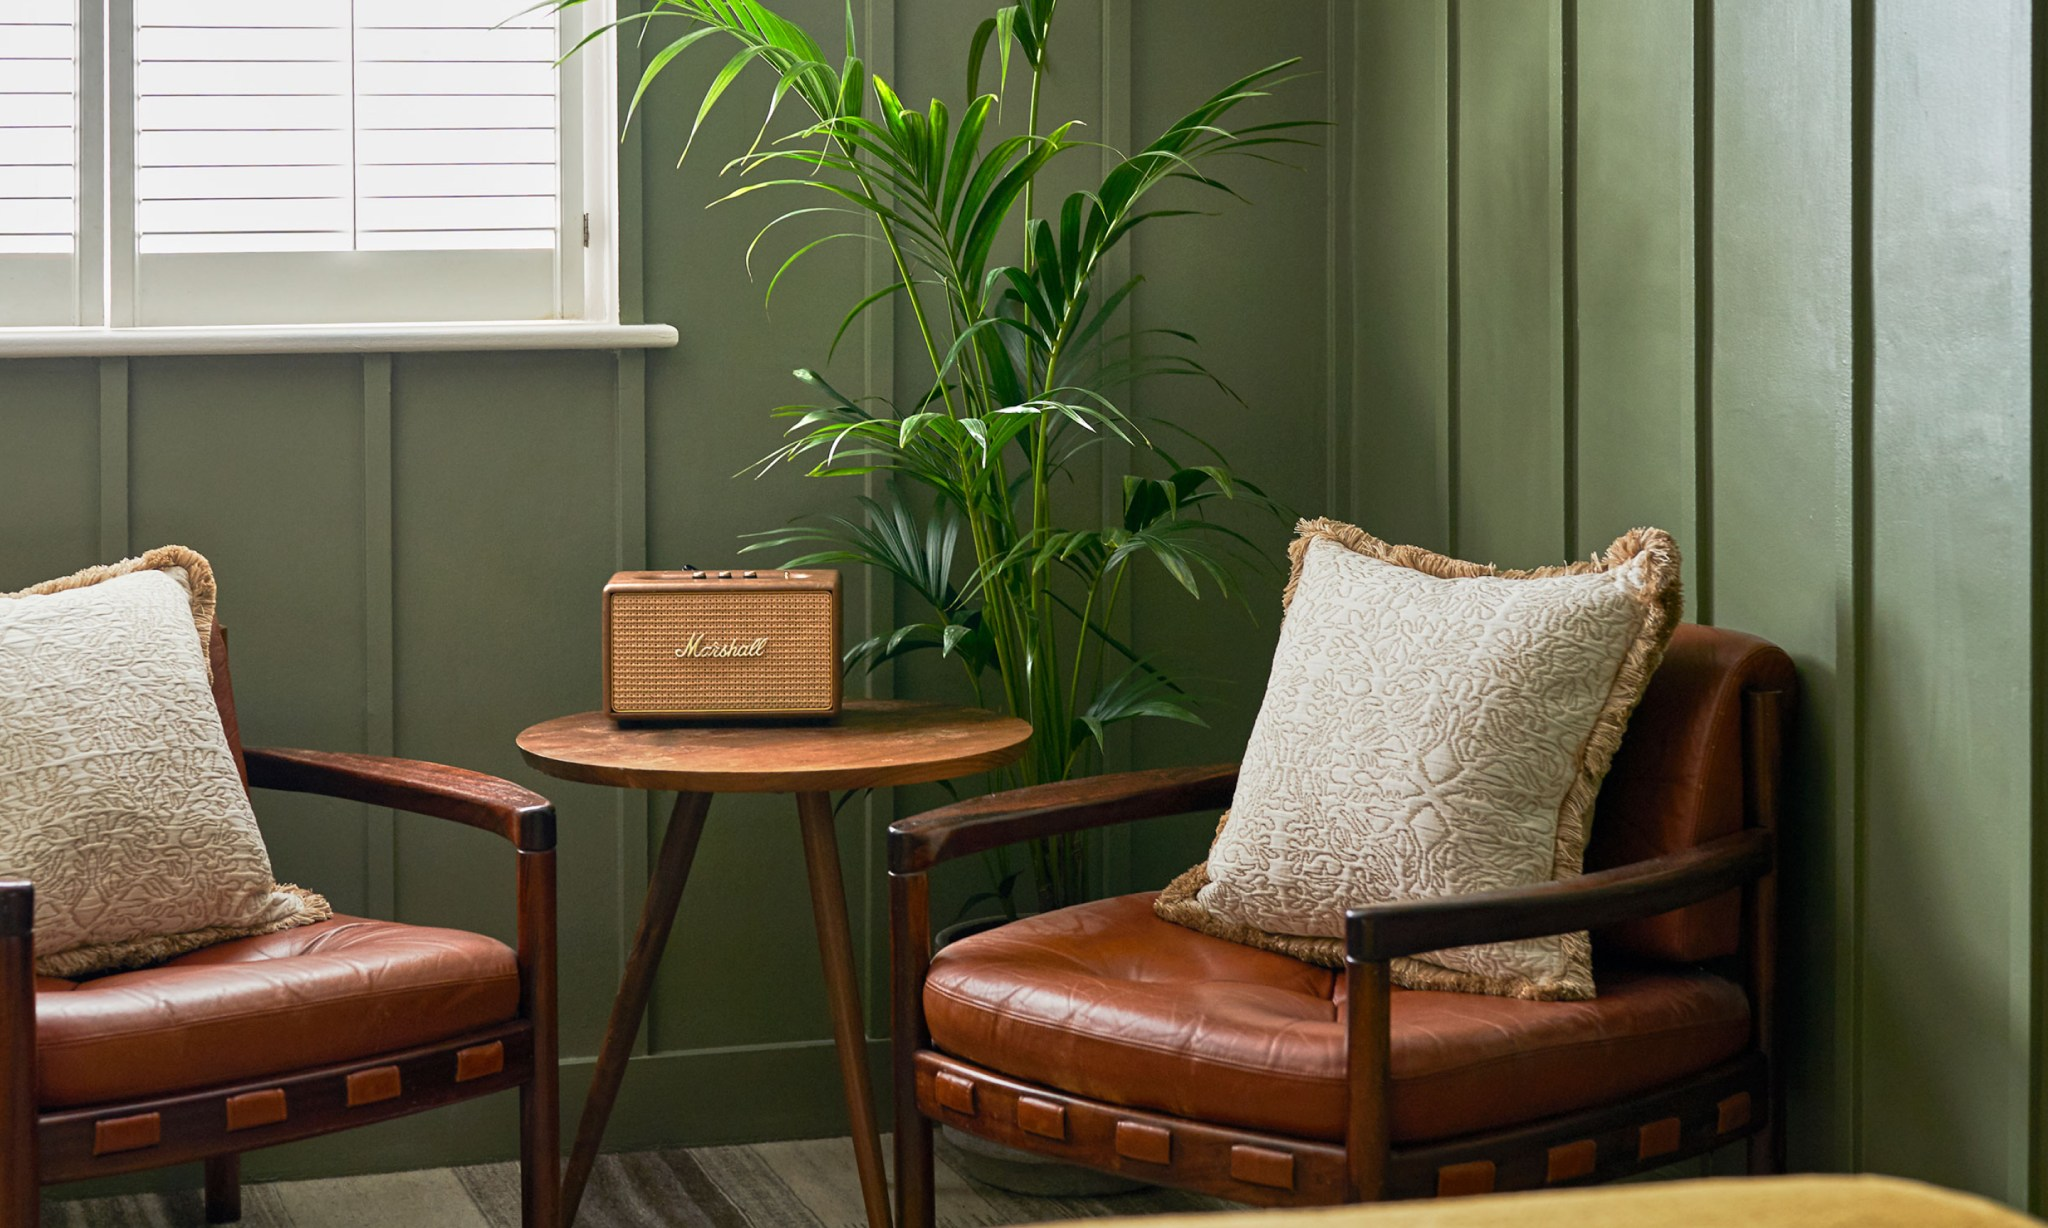 A bedroom's lounging area with two armchairs, a table, portable speaker and a plant.